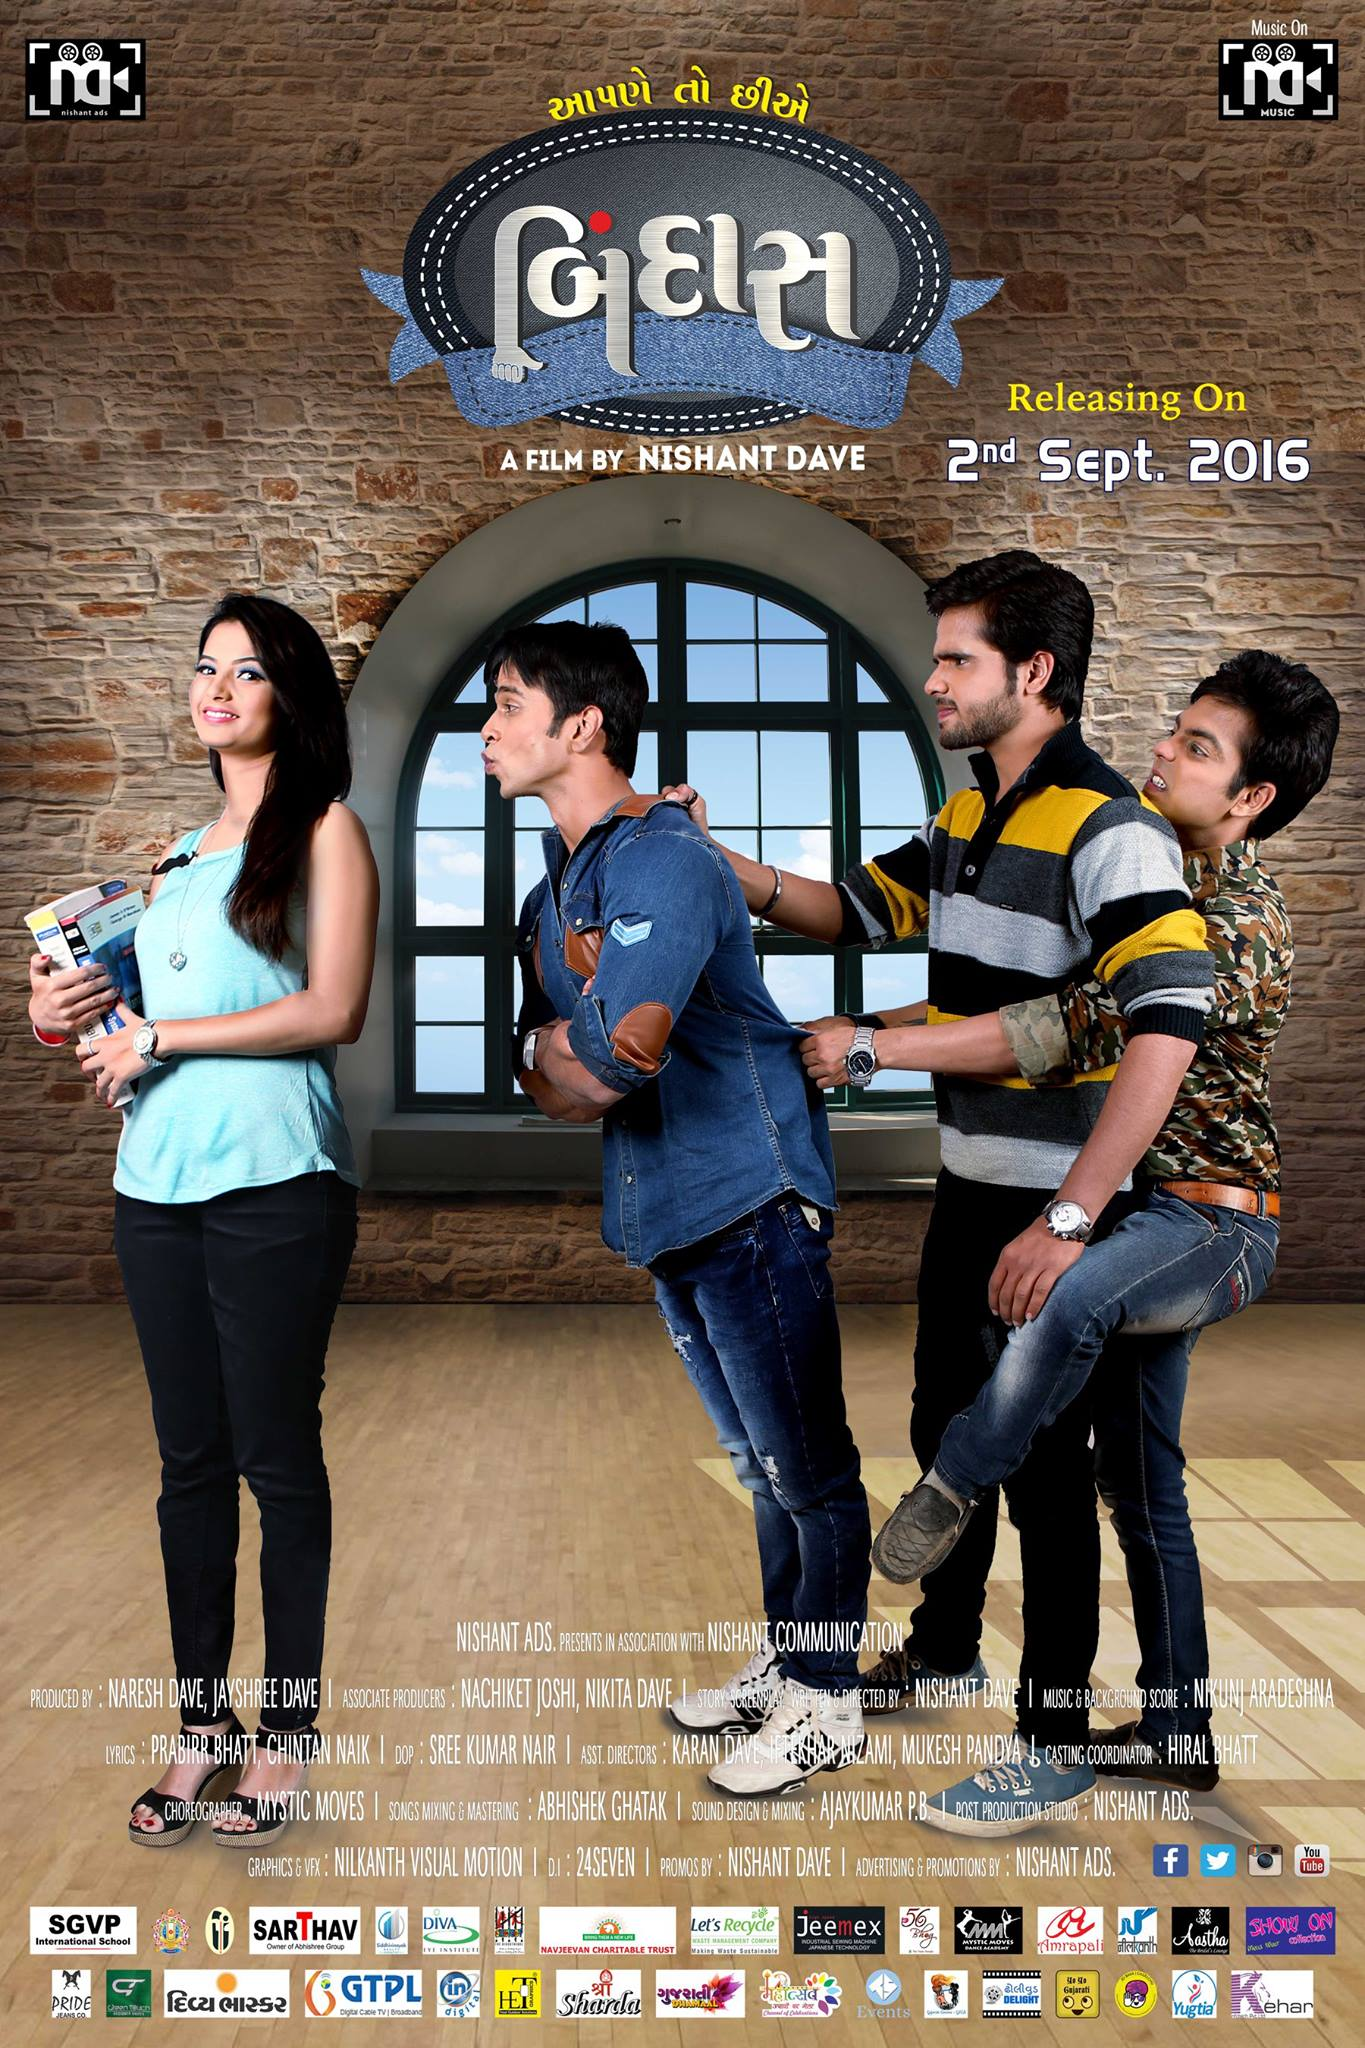 Aapne Toh Chhie Bindaas 2016 Gujarati 720p HDRip ESubs 1220MB Download